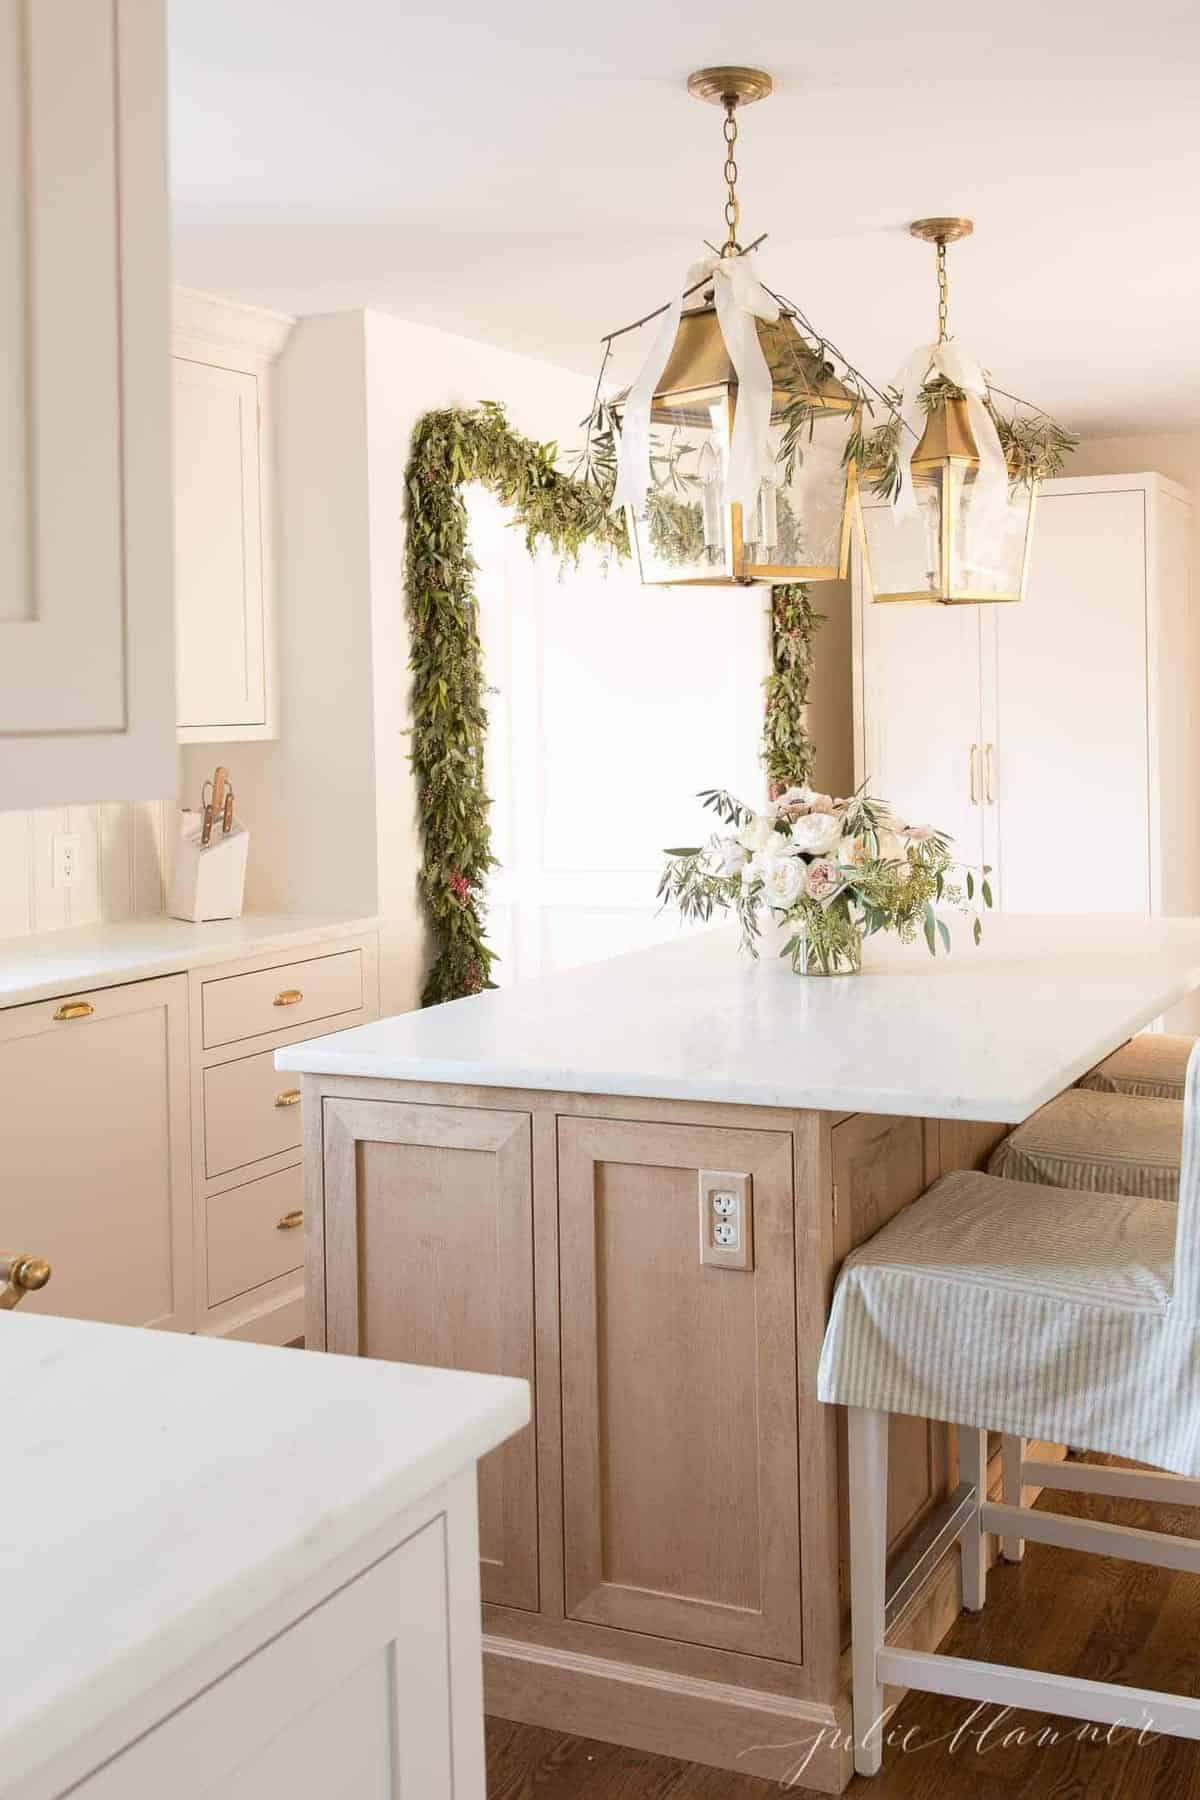 A Cream kitchen with a light wood island, brass lanterns, decorated for Christmas.